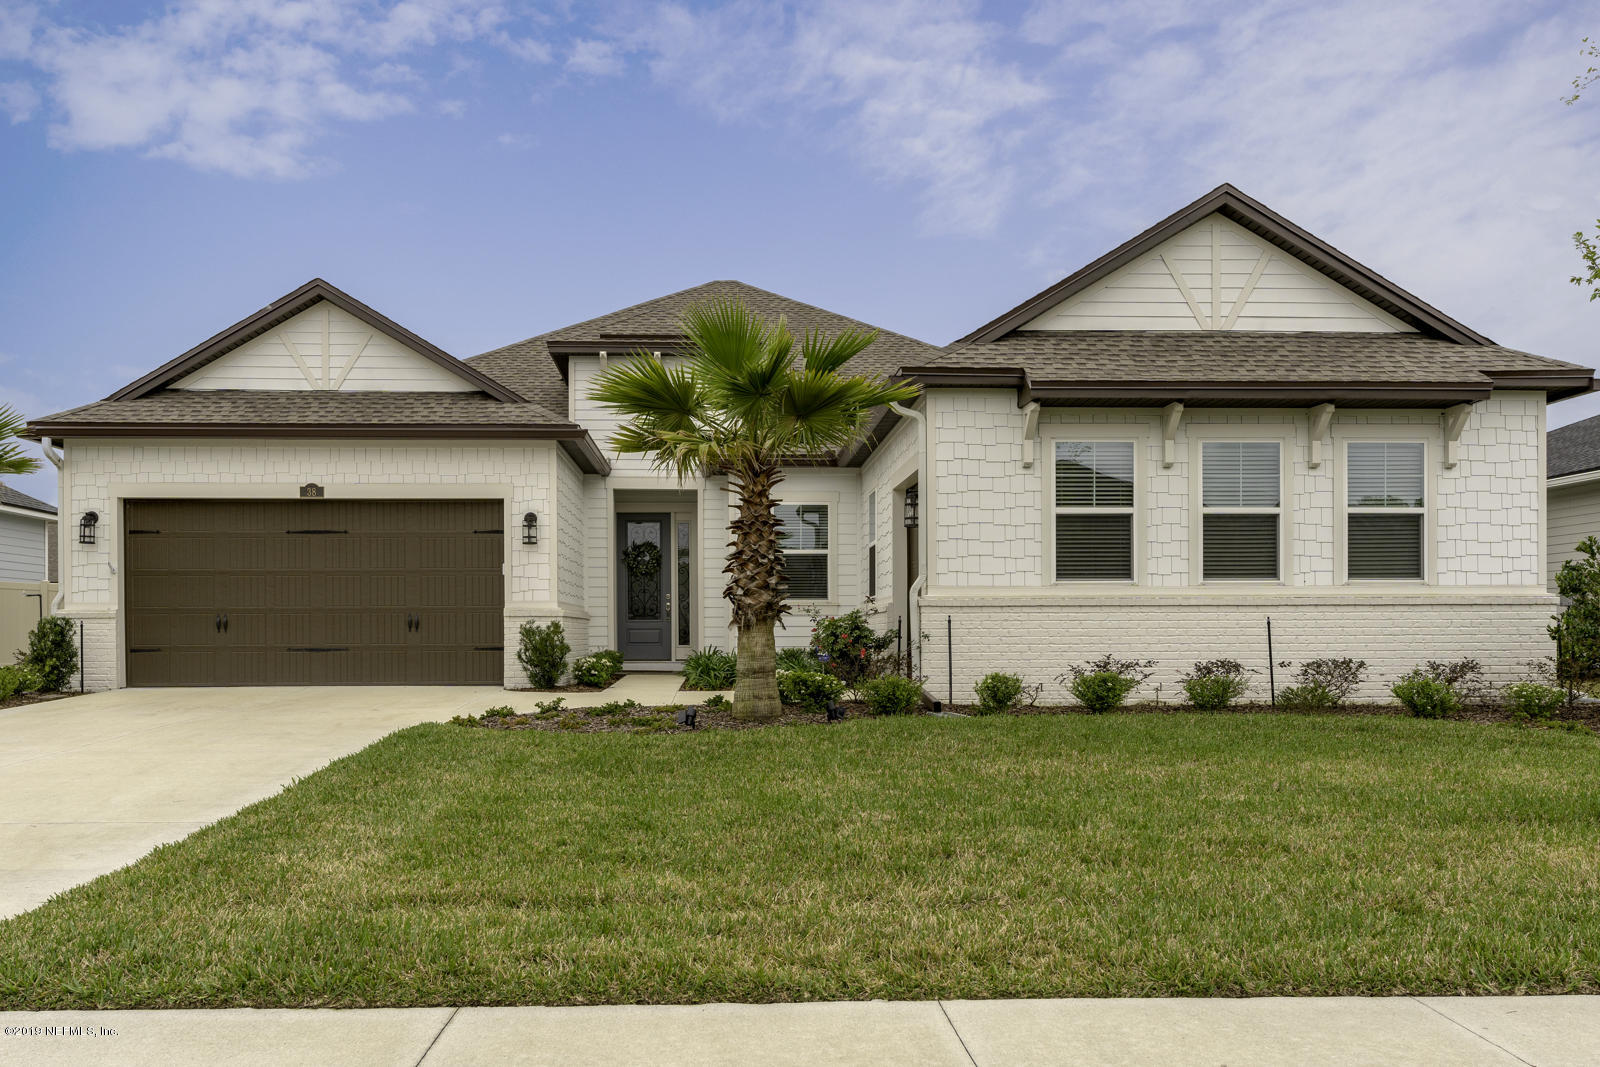 38 FORTRESS, PONTE VEDRA, FLORIDA 32081, 4 Bedrooms Bedrooms, ,3 BathroomsBathrooms,Residential - single family,For sale,FORTRESS,981705